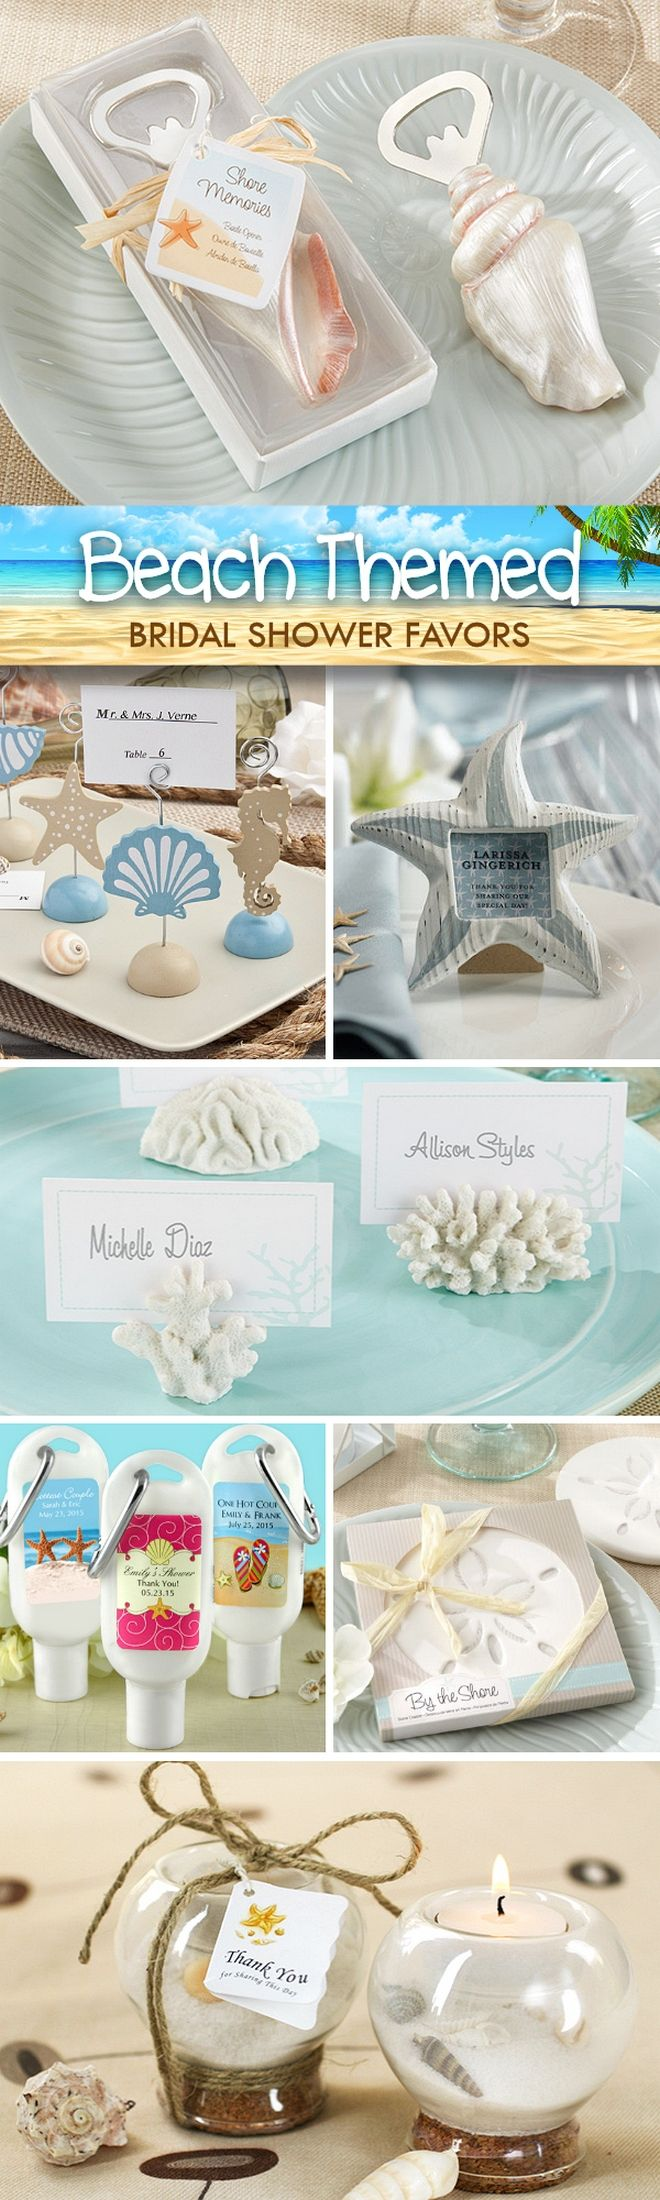 Marvelous 100+ Gorgeous Beach Themed Wedding Ideas and Accessories ...